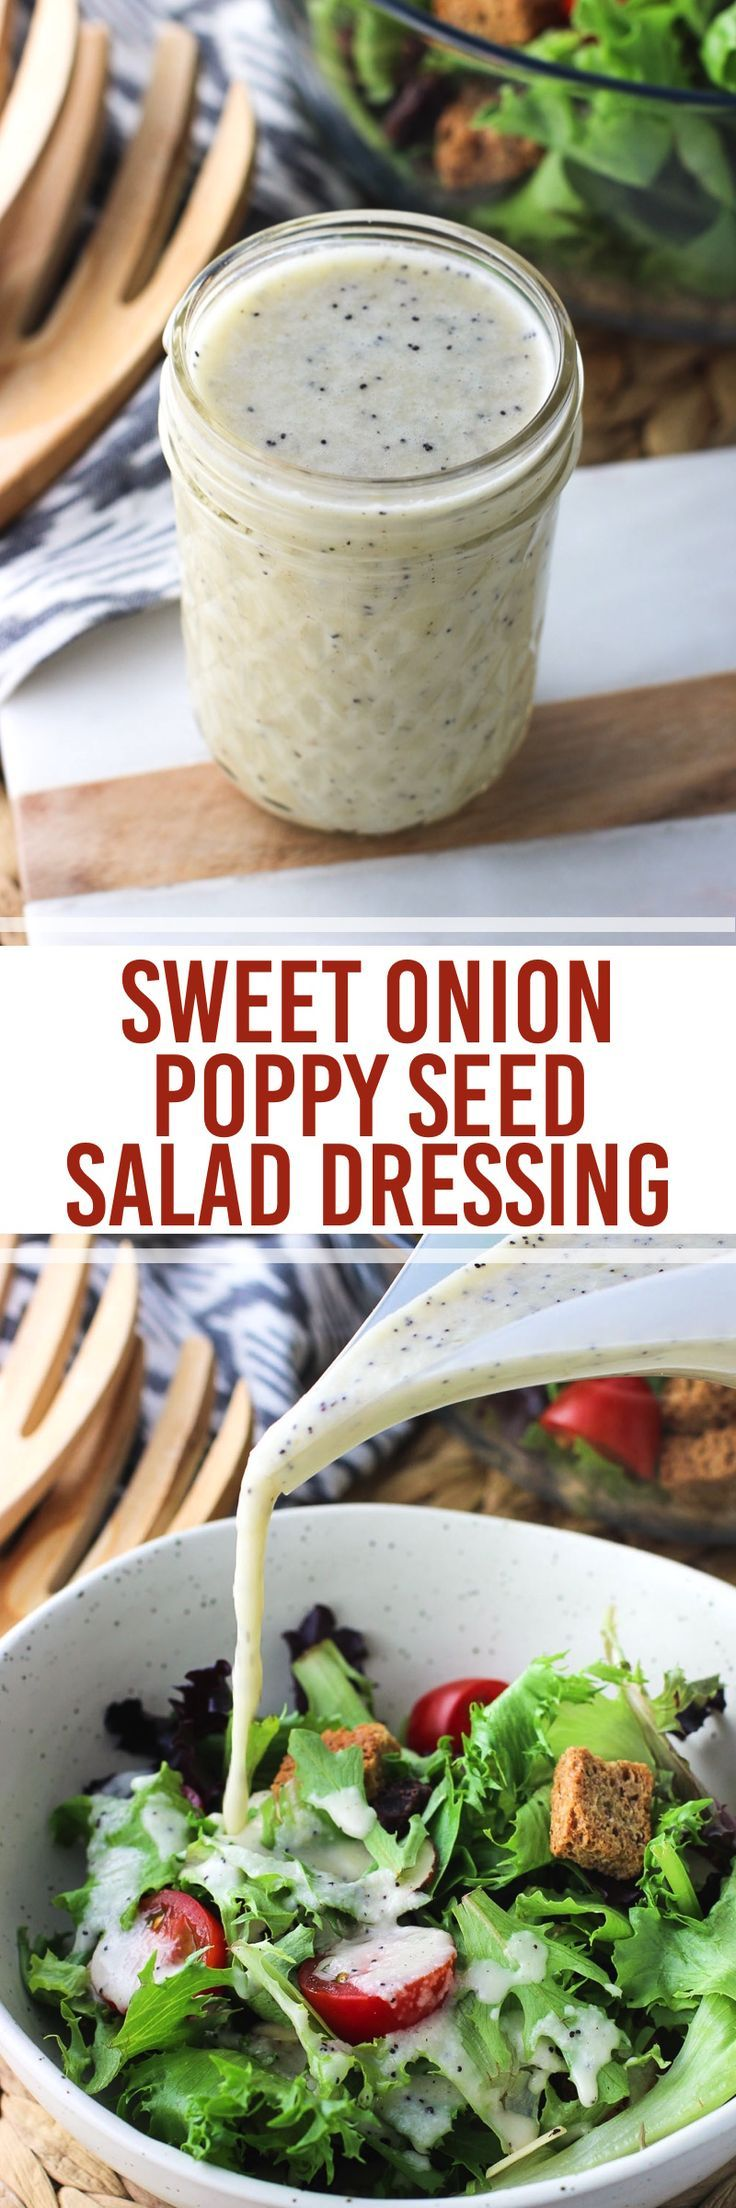 Sweet Onion Poppy Seed Salad Dressing is bursting with flavor and made with healthy oils for a bold and very lightly sweetened salad dressing.